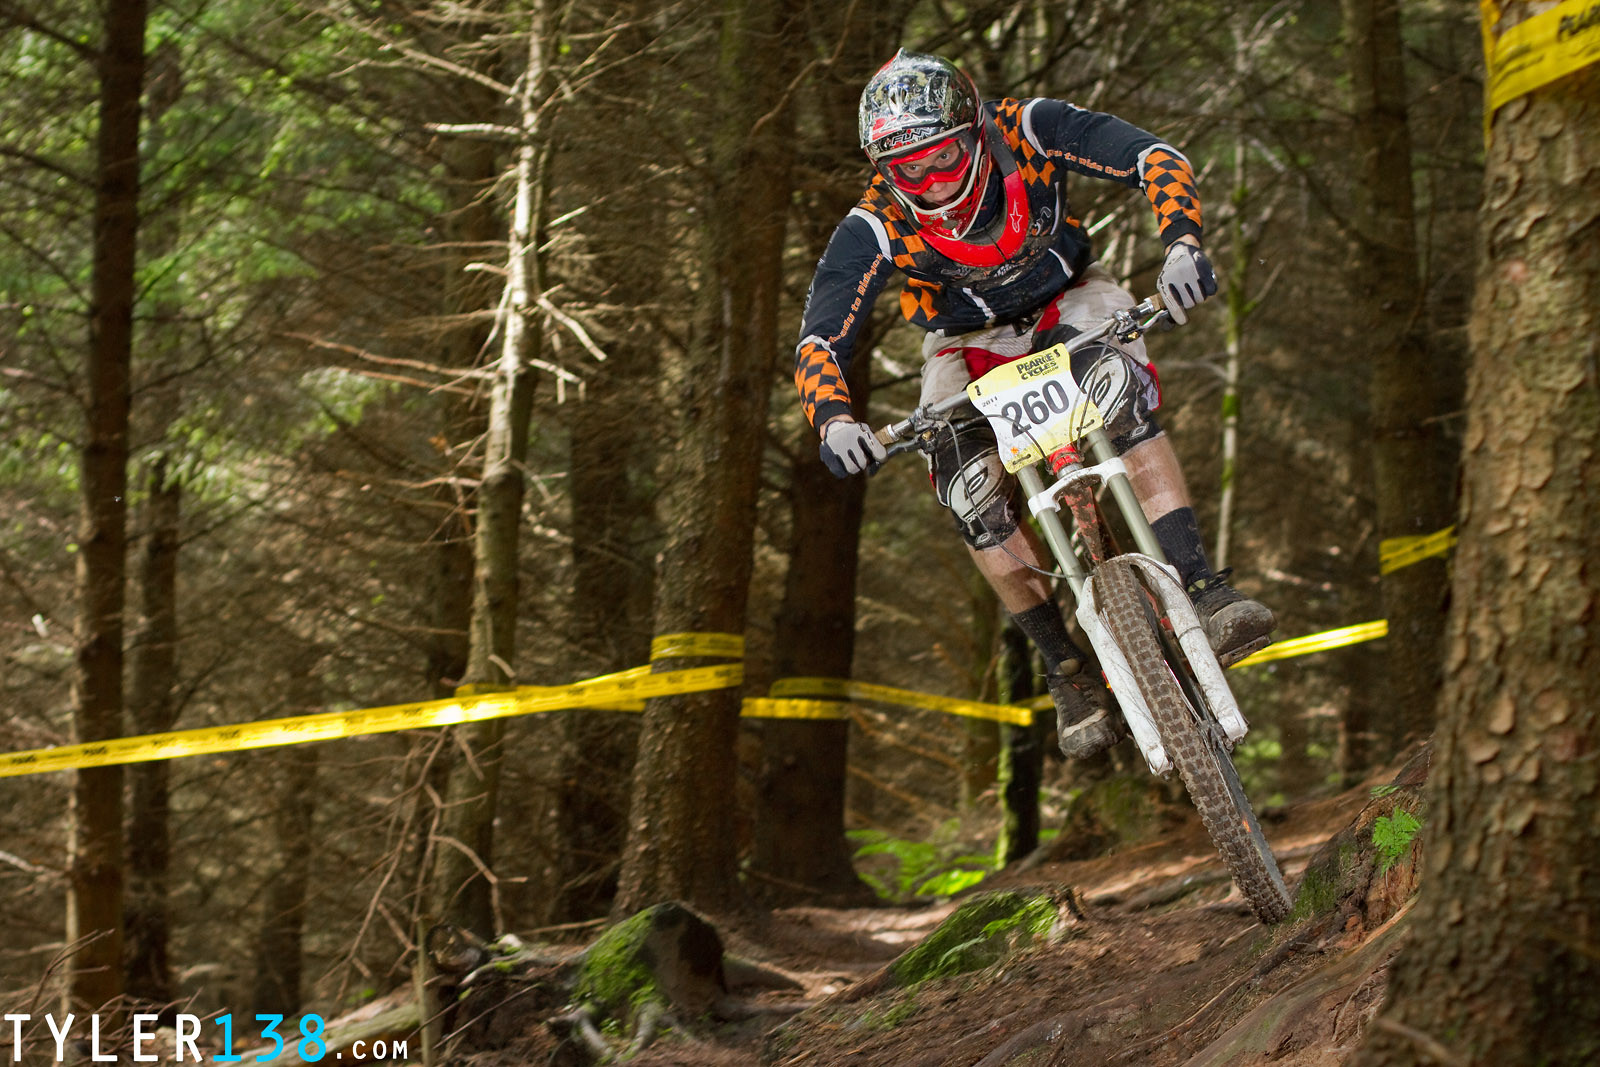 Pearce Cycles Rnd 3 Hopton - Tyler138 - Mountain Biking Pictures - Vital MTB